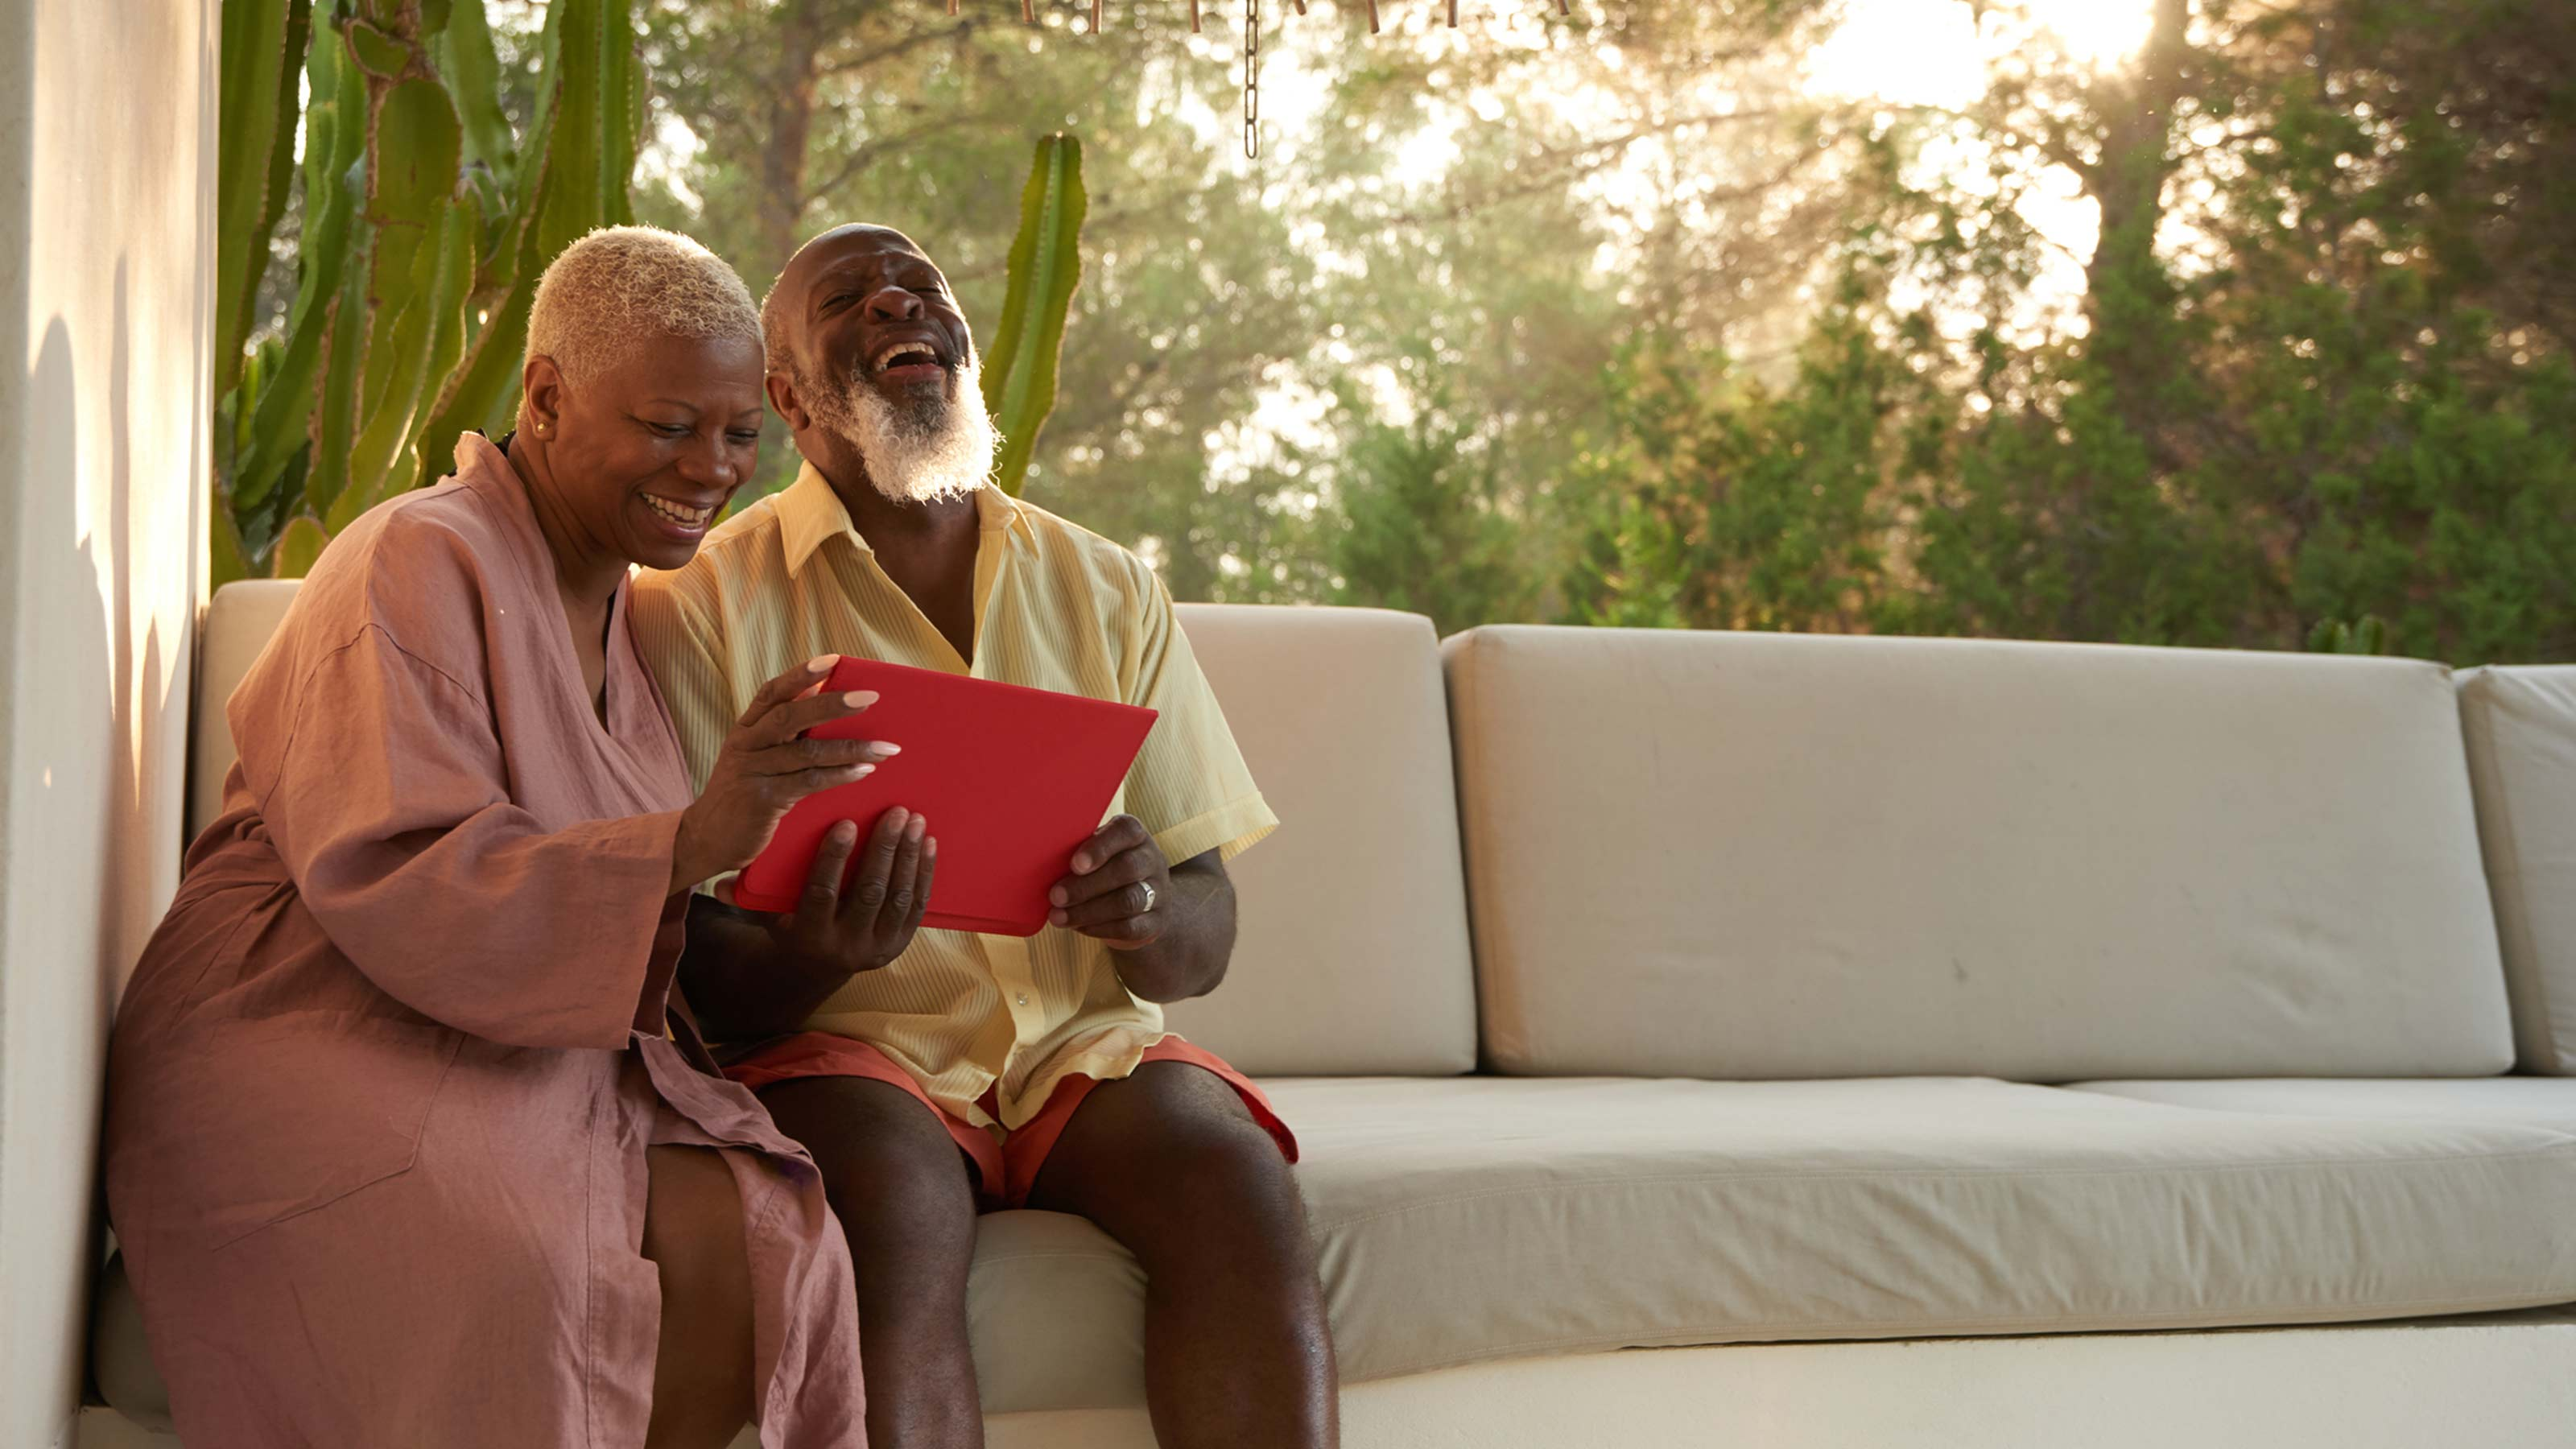 Retirees, See the World Without Leaving Home | Kiplinger